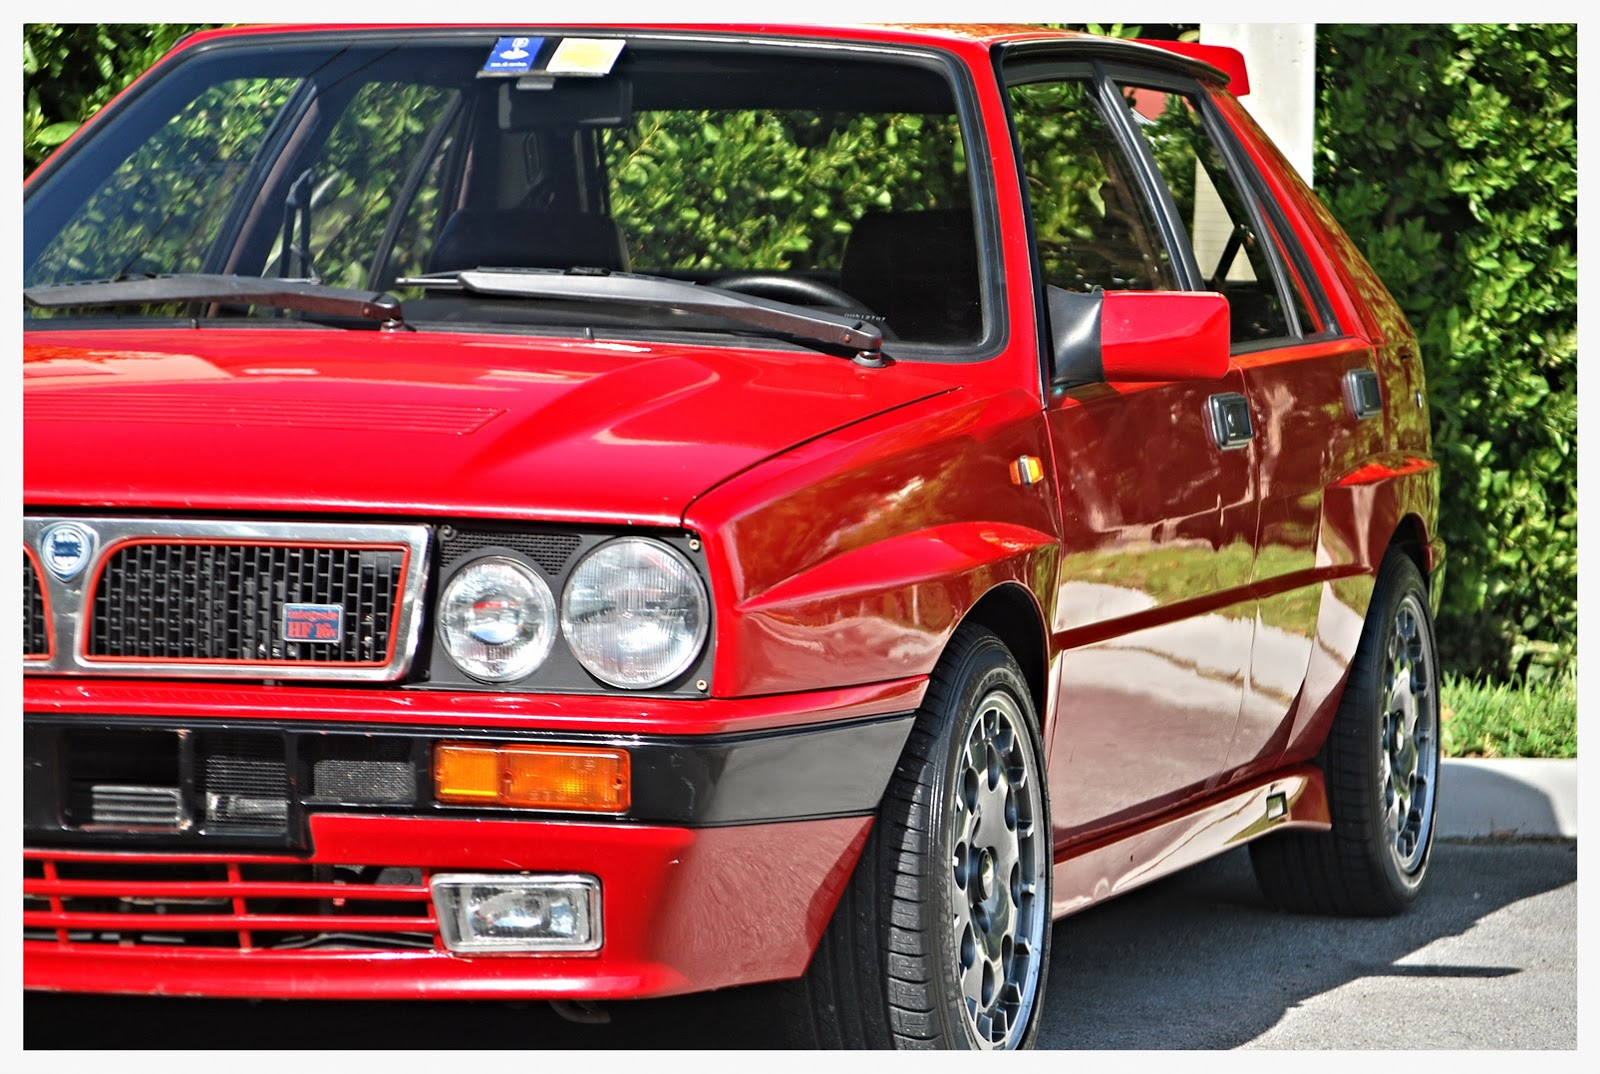 Theres a 1989 lancia delta hf integrale for sale in the usa right theres a 1989 lancia delta hf integrale for sale in the usa right now vanachro Choice Image